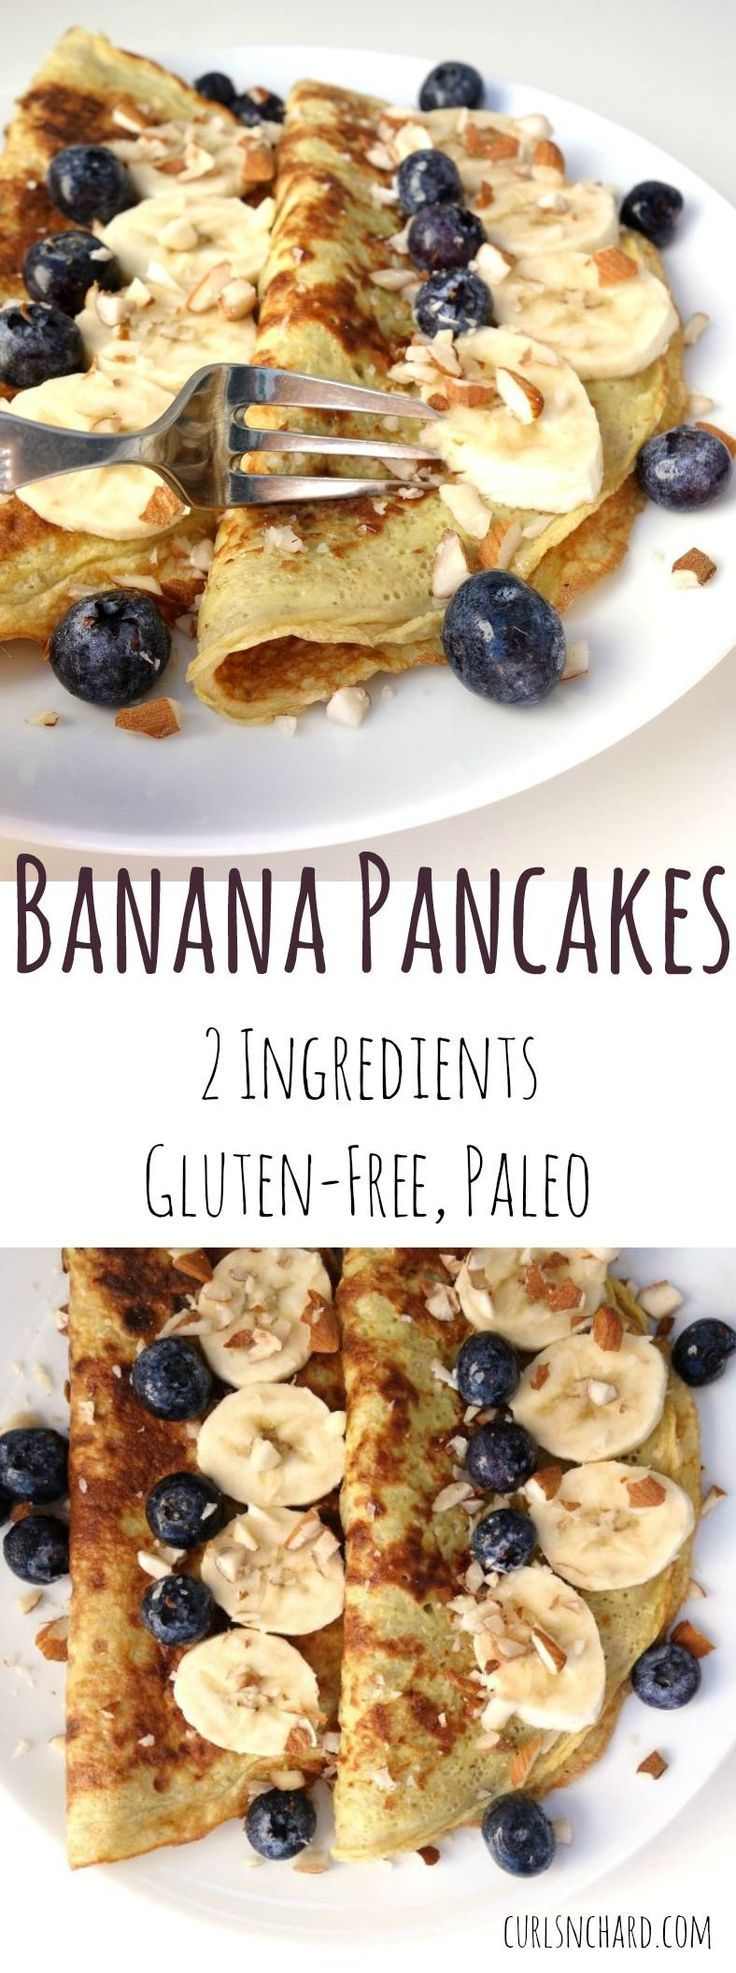 Banana Pancakes   Just 2 ingredients, delicious, gluten-free and super fast breakfast!   curlsnchard.com